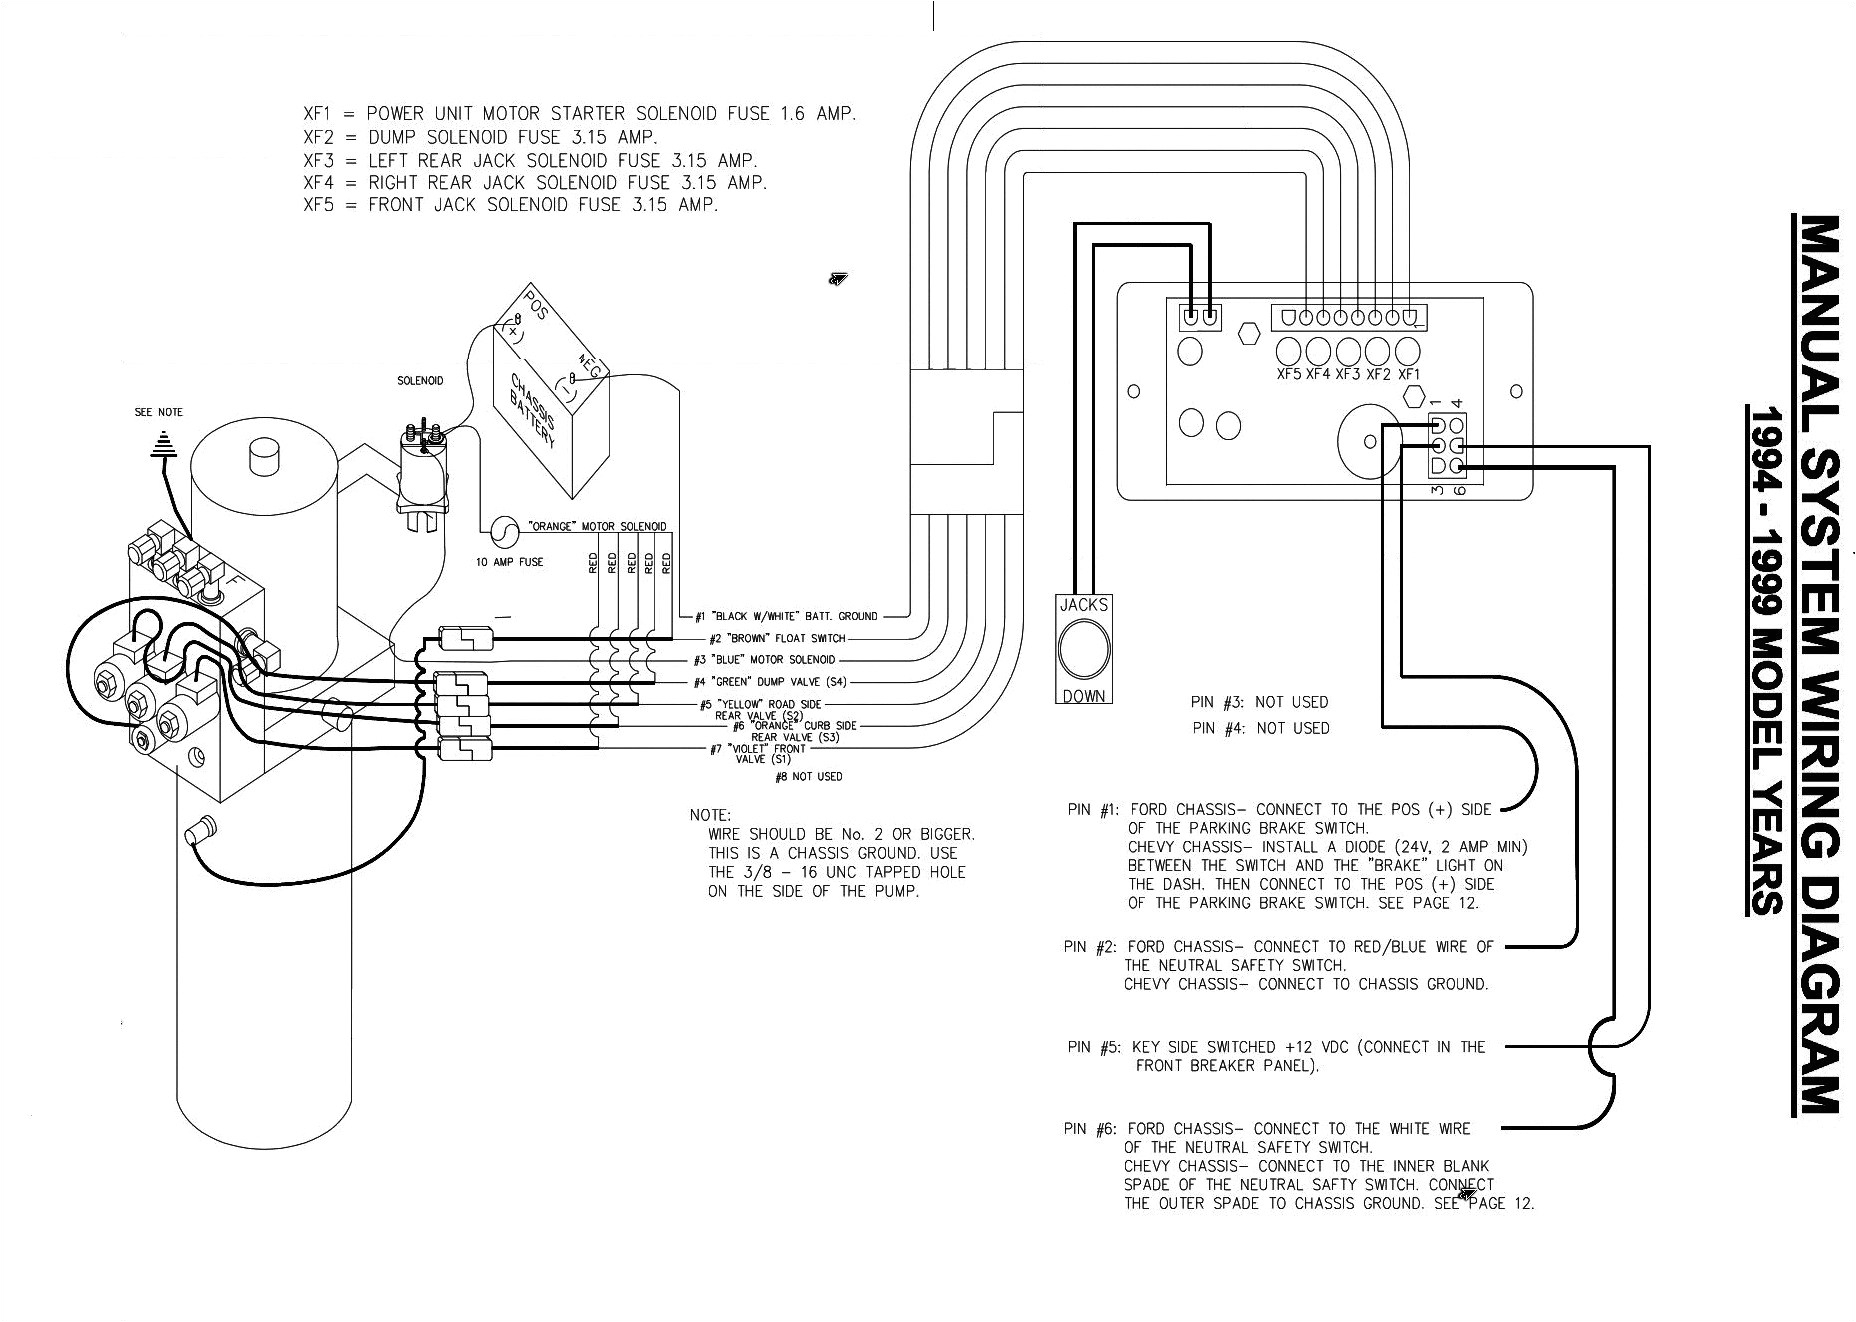 wiring diagram leviton gigamax cat5e how to with